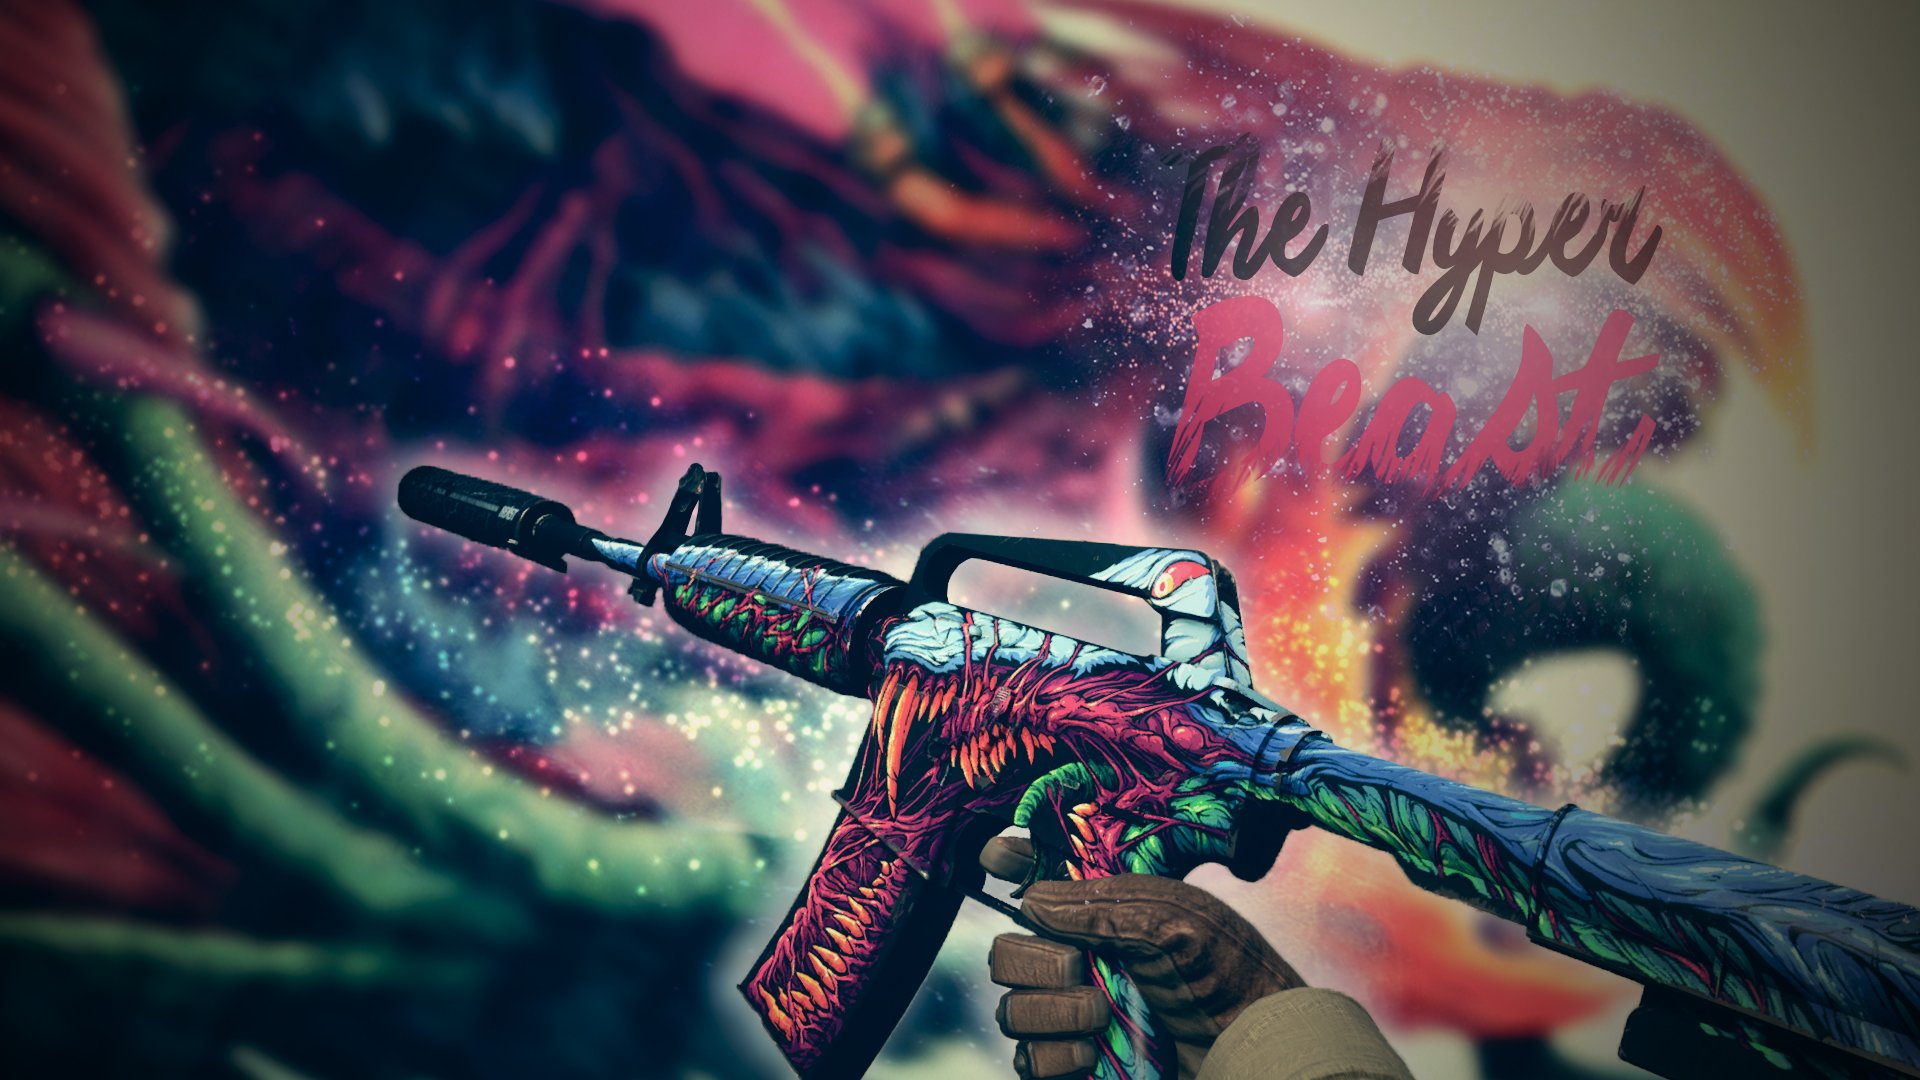 Art of CSGO skin   M4A1 S Hyper Beast by SequiCZ 1920x1080